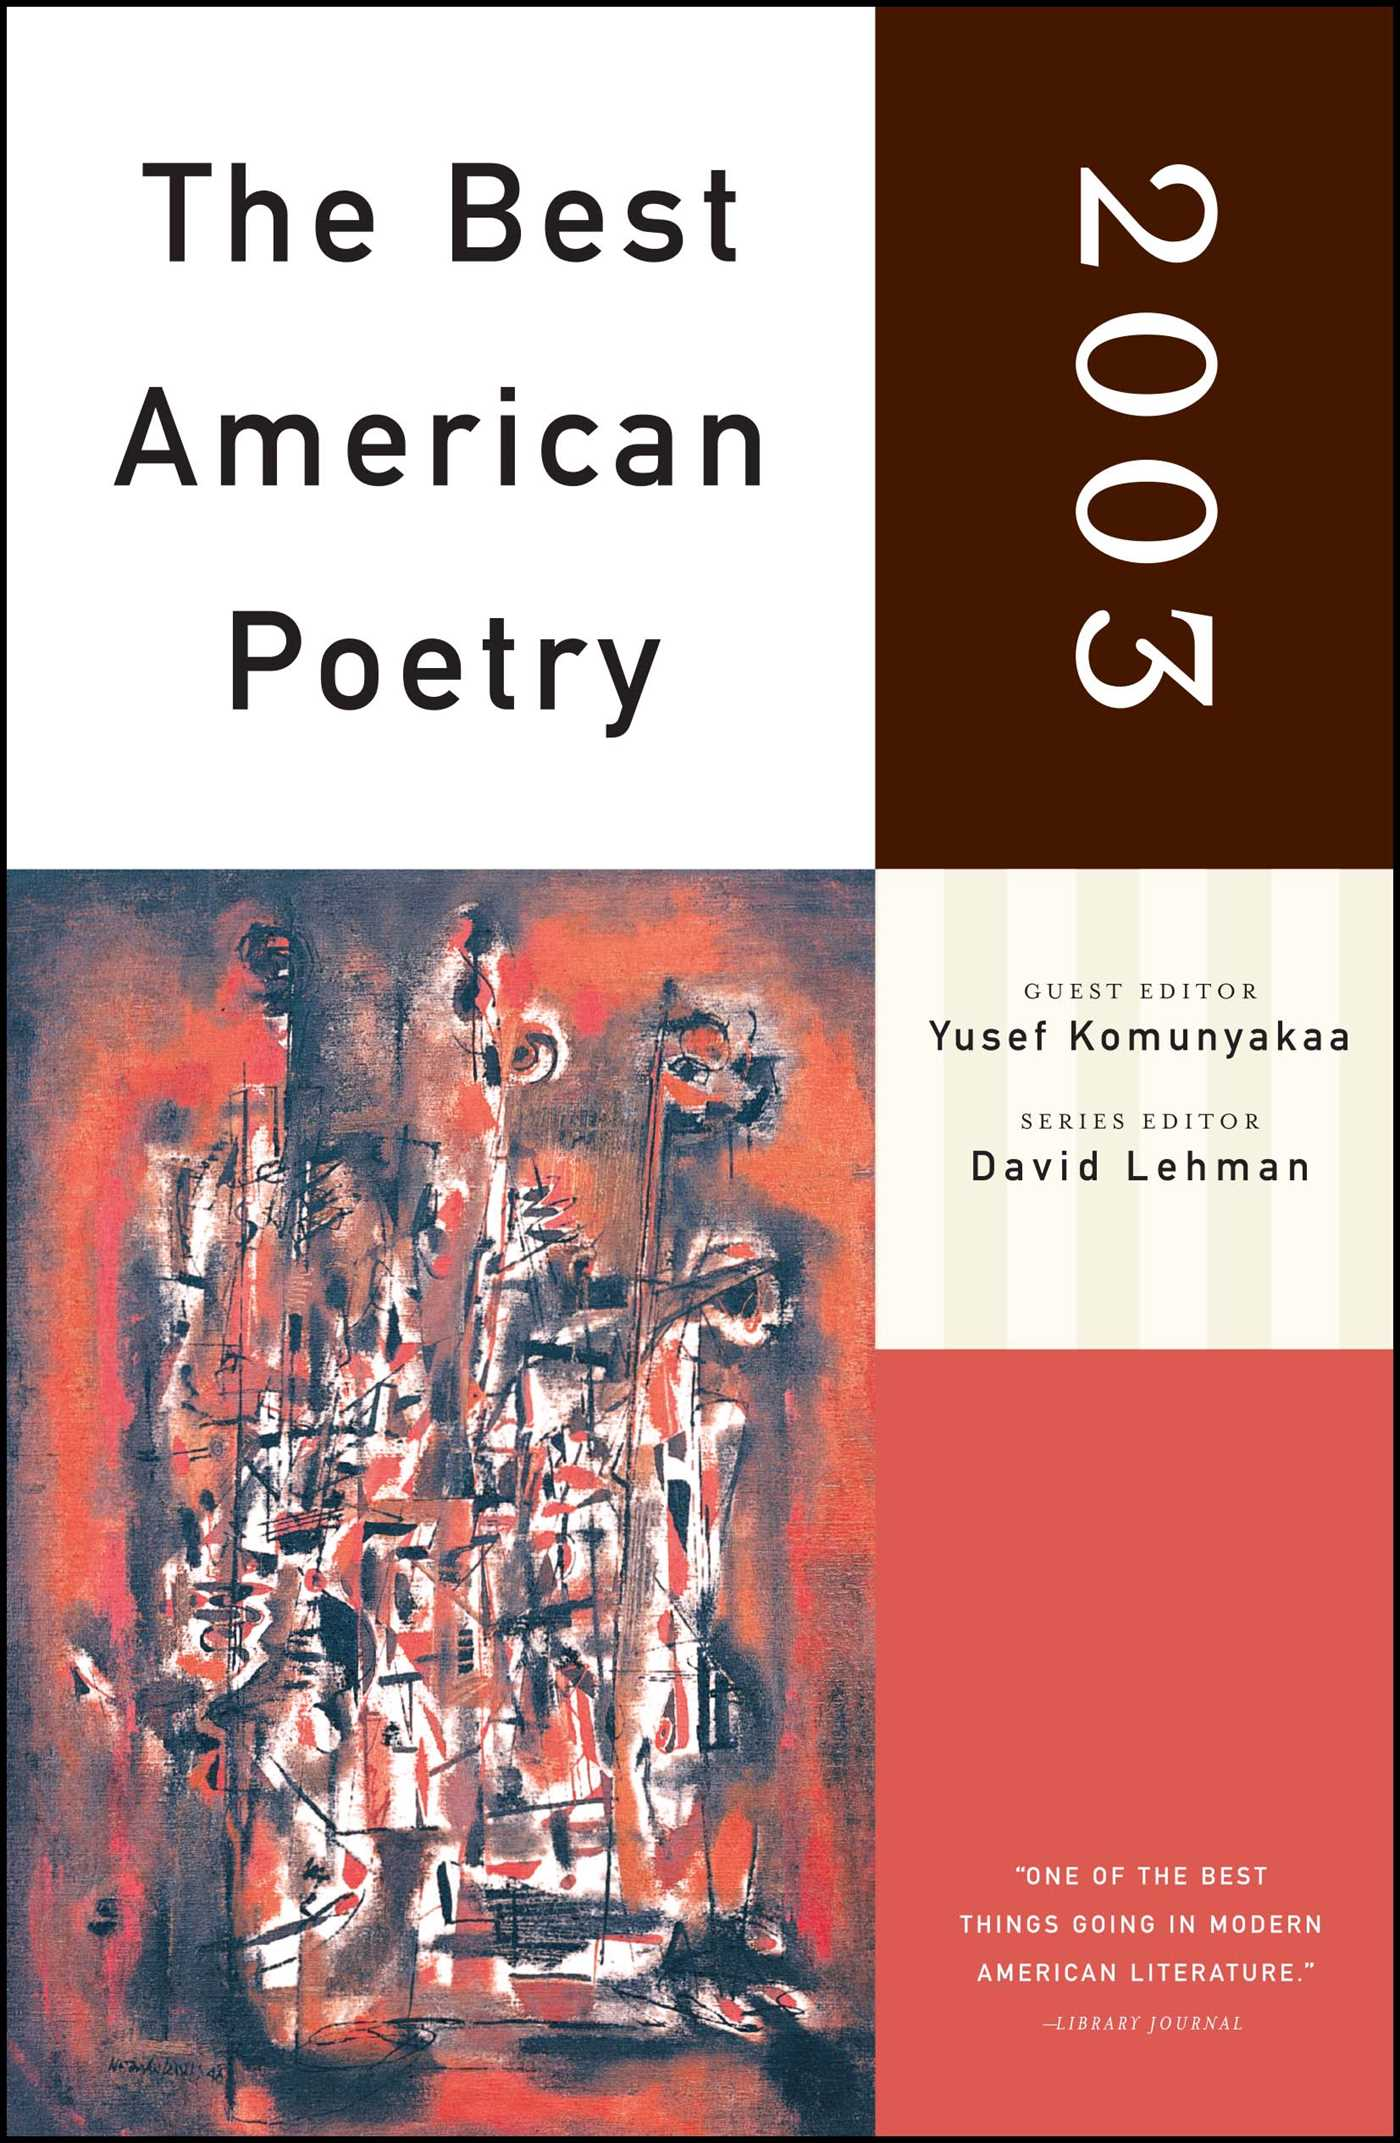 The best american poetry 2003 9780743203883 hr